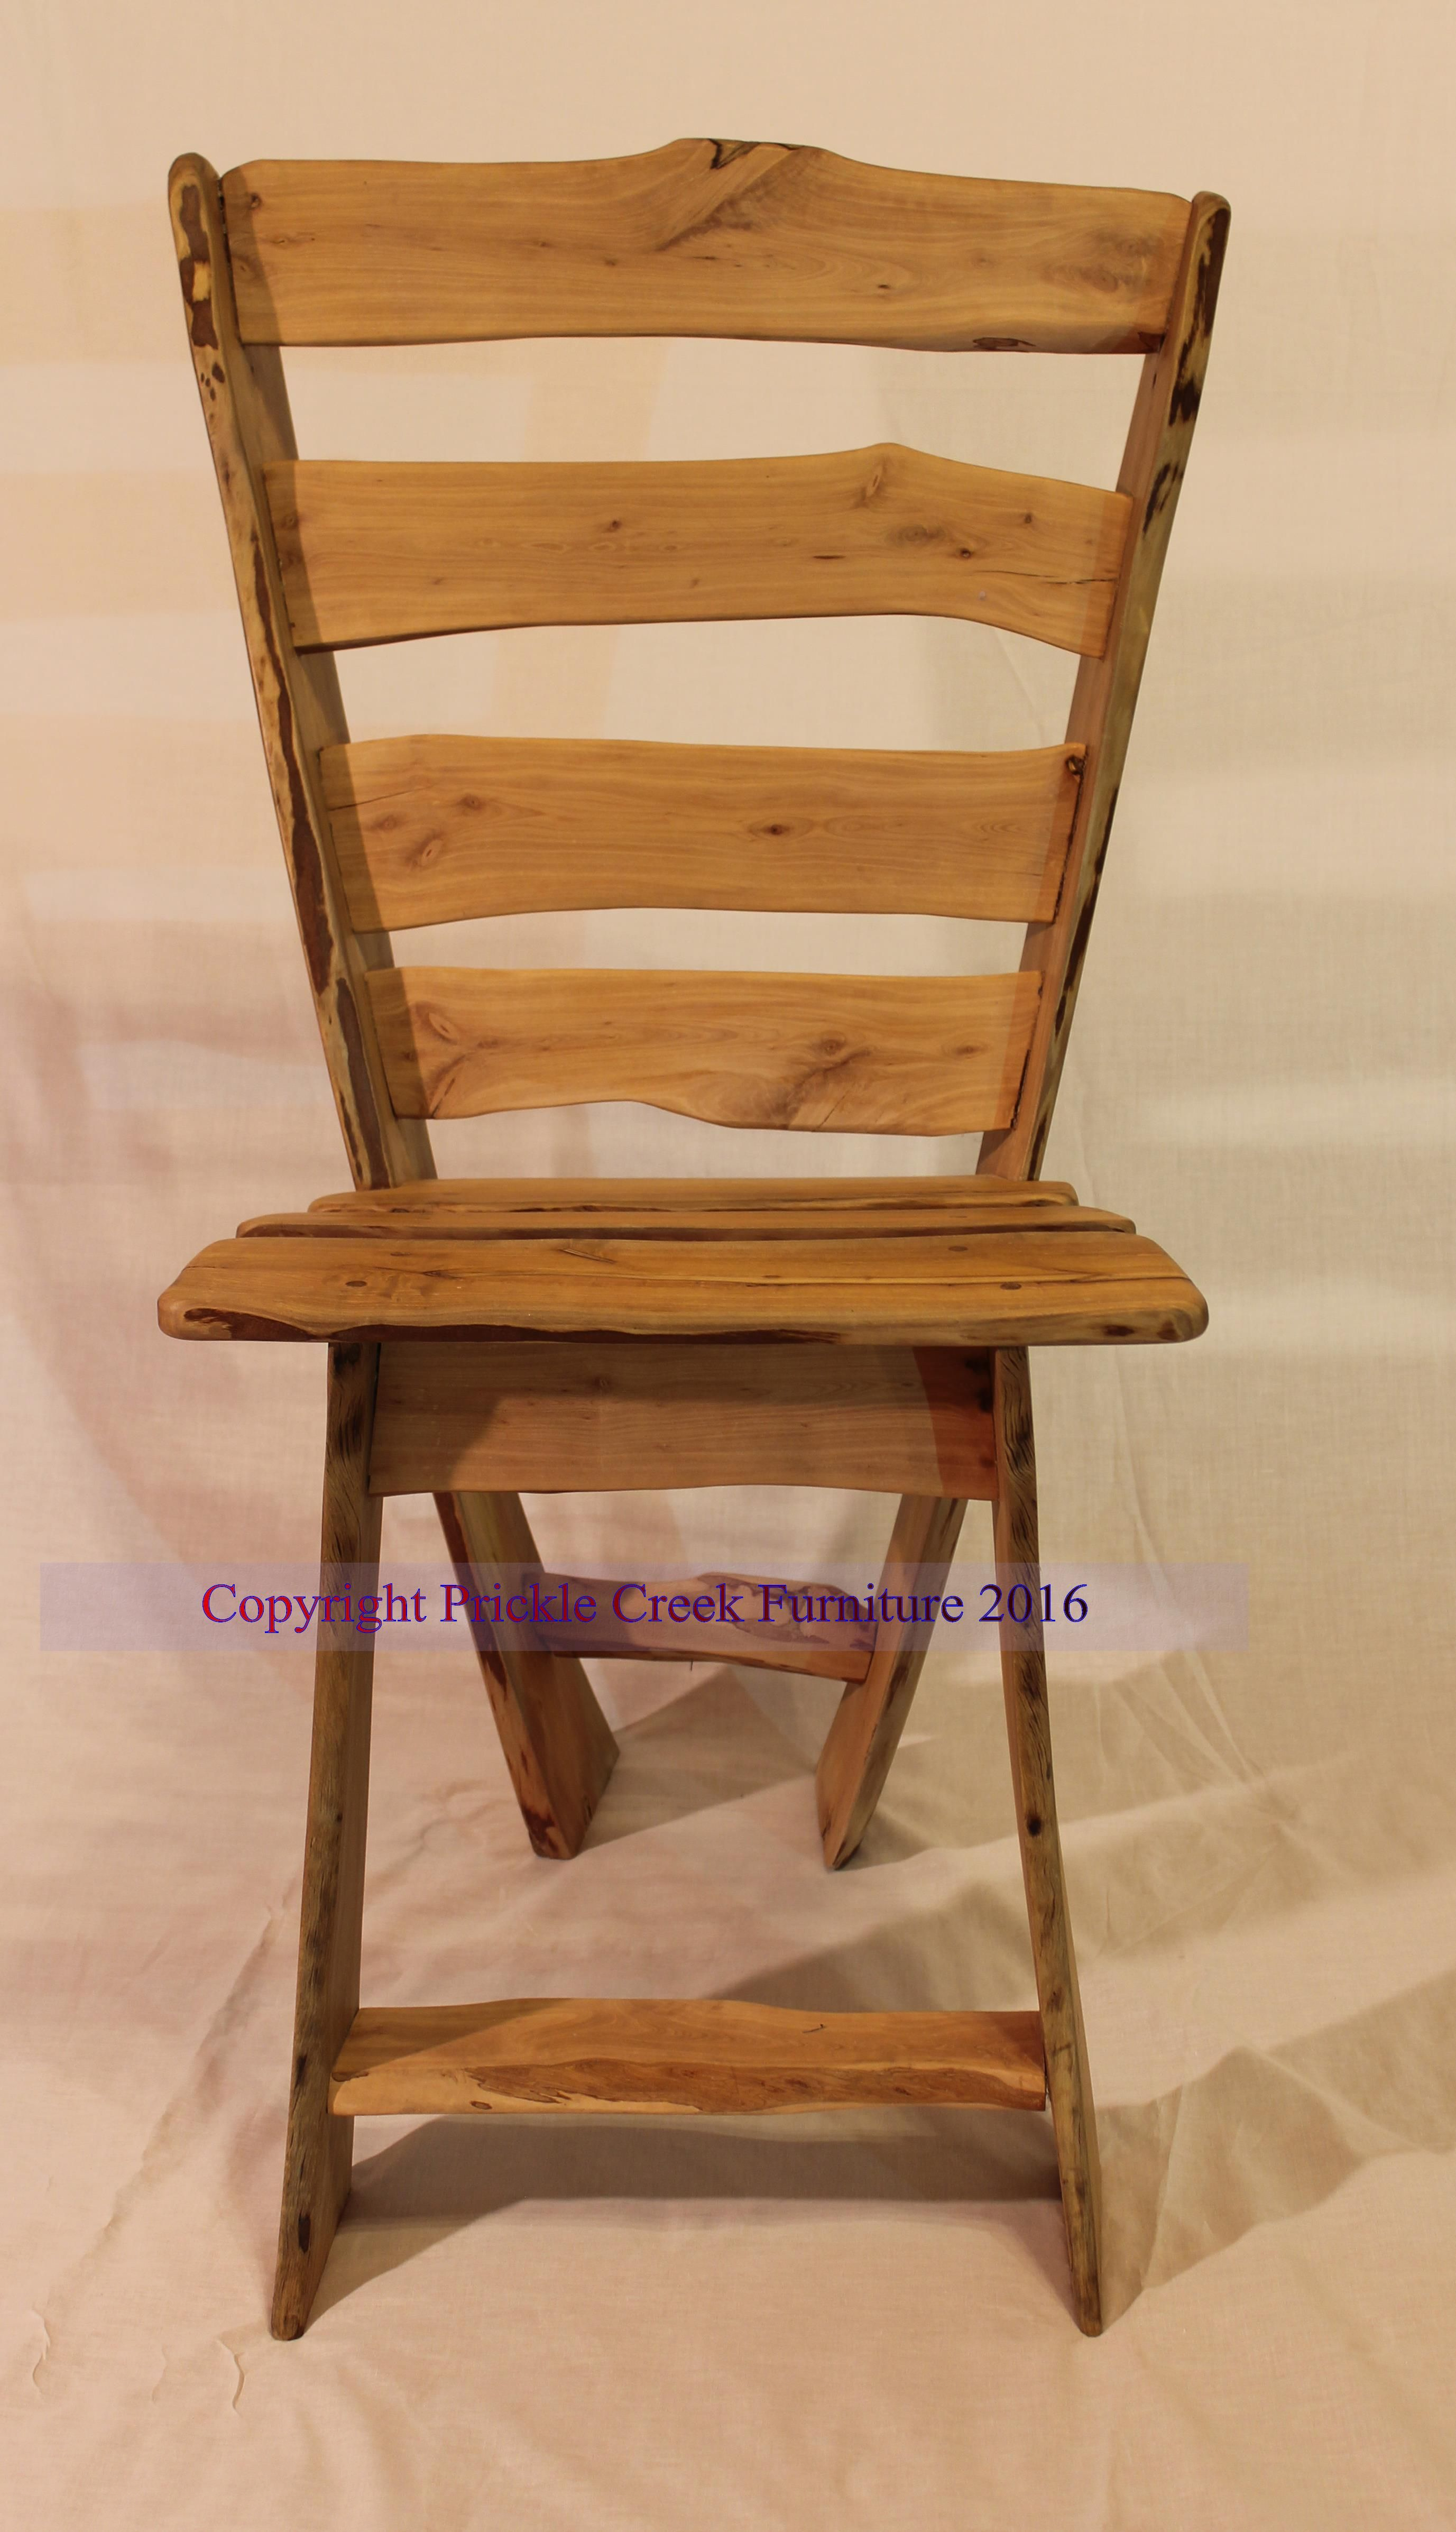 Dining chair handmade from Eco Sourced Fruitwood by Prickle Creek Furniture & Dining chair handmade from Eco Sourced Fruitwood by Prickle Creek ...